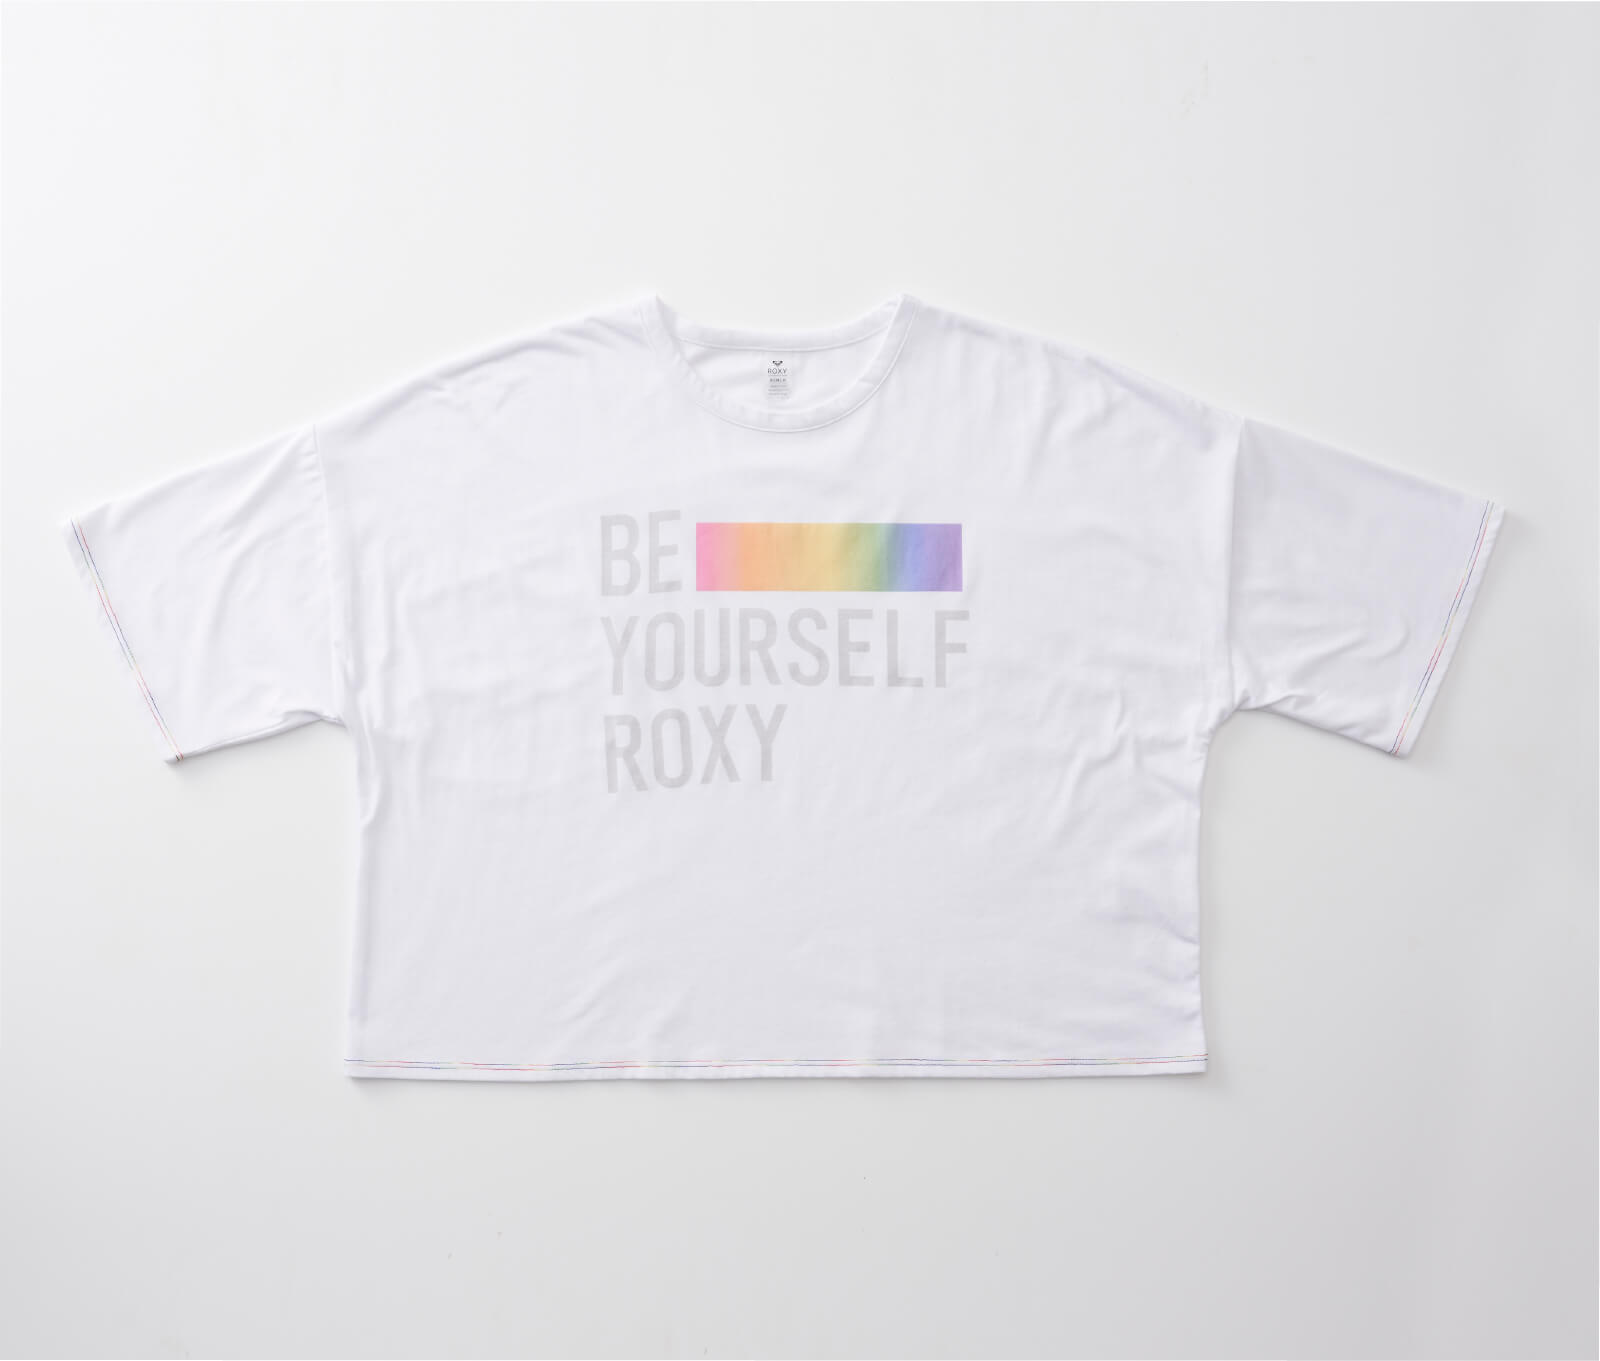 ROXY BE YOURSELF 画像01